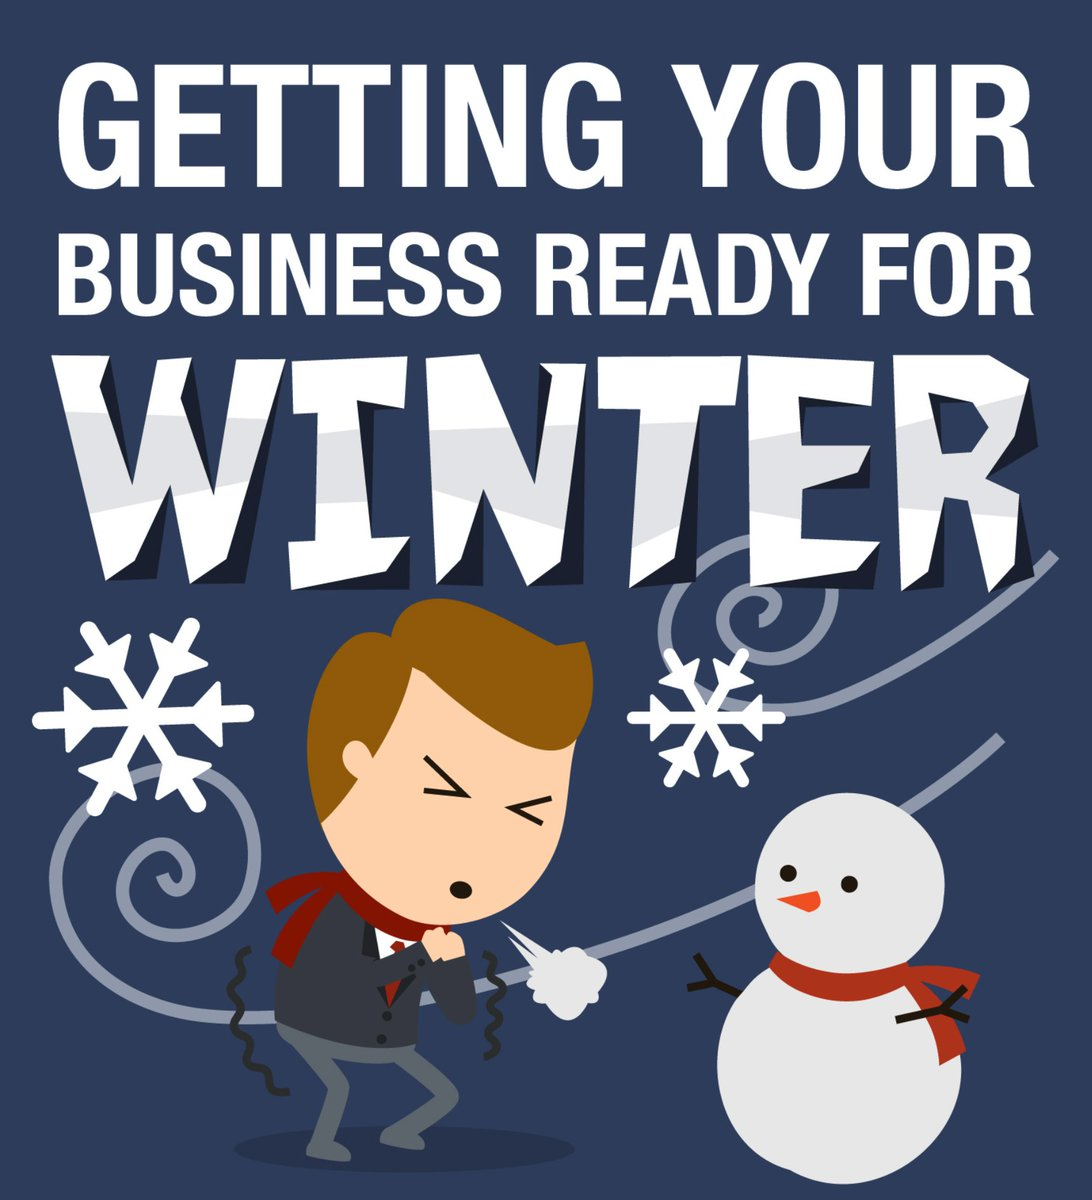 It Takes Lot Of Energy To Prepare For >> Questline Inc On Twitter Winter Is Coming Start Preparing Your